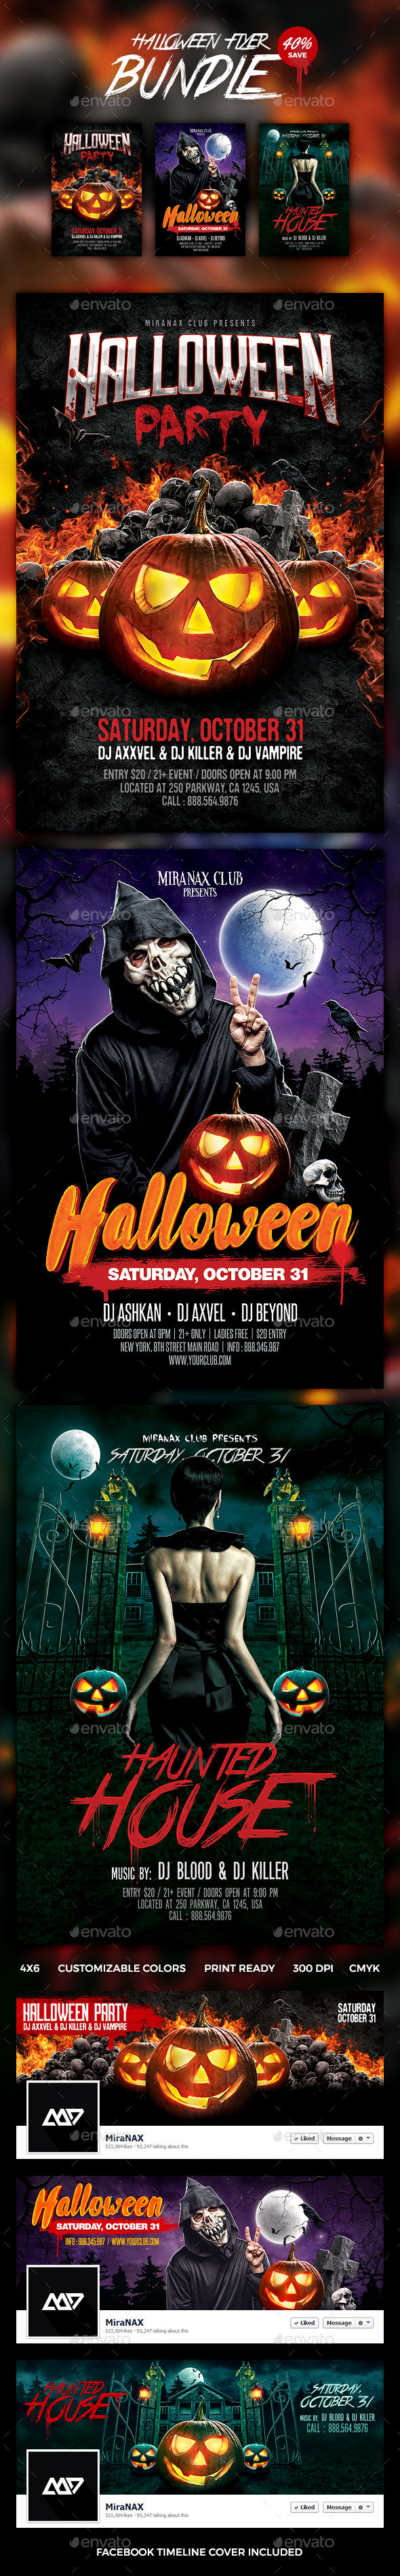 Halloween by HyperPix (Halloween party flyer)